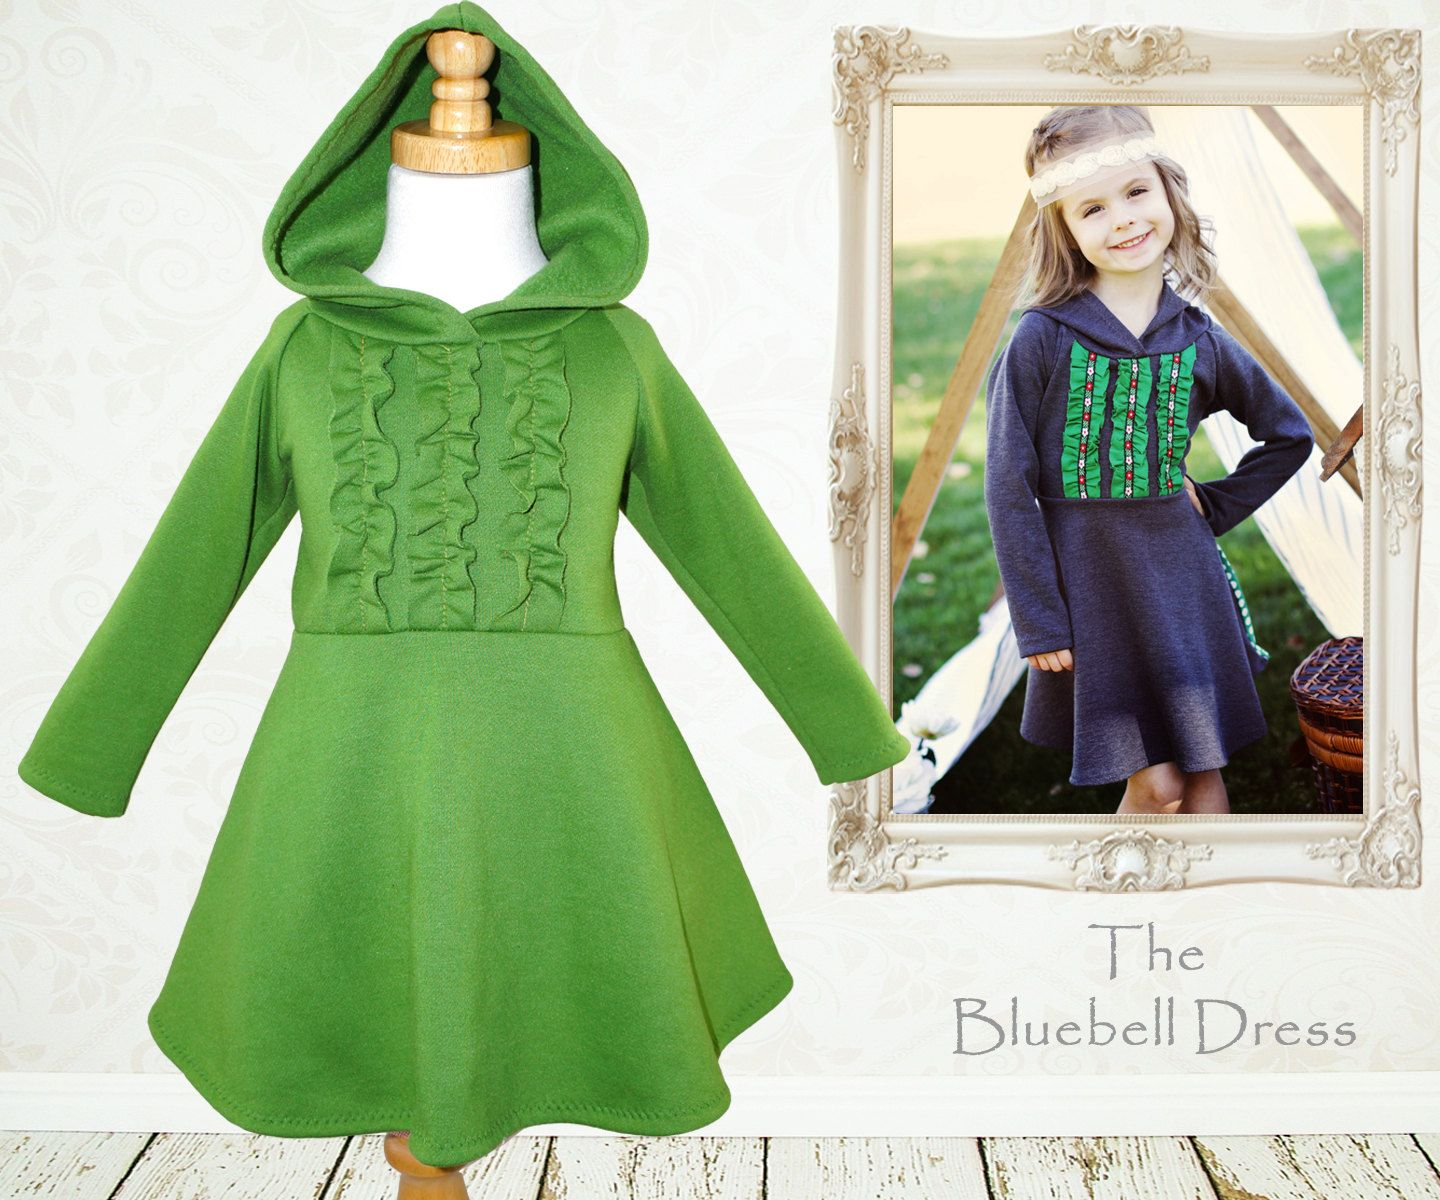 Childrens sewing pattern pdf girls dress pattern pdf girls childrens sewing pattern pdf girls dress by mychildhoodtreasures 750 jeuxipadfo Choice Image